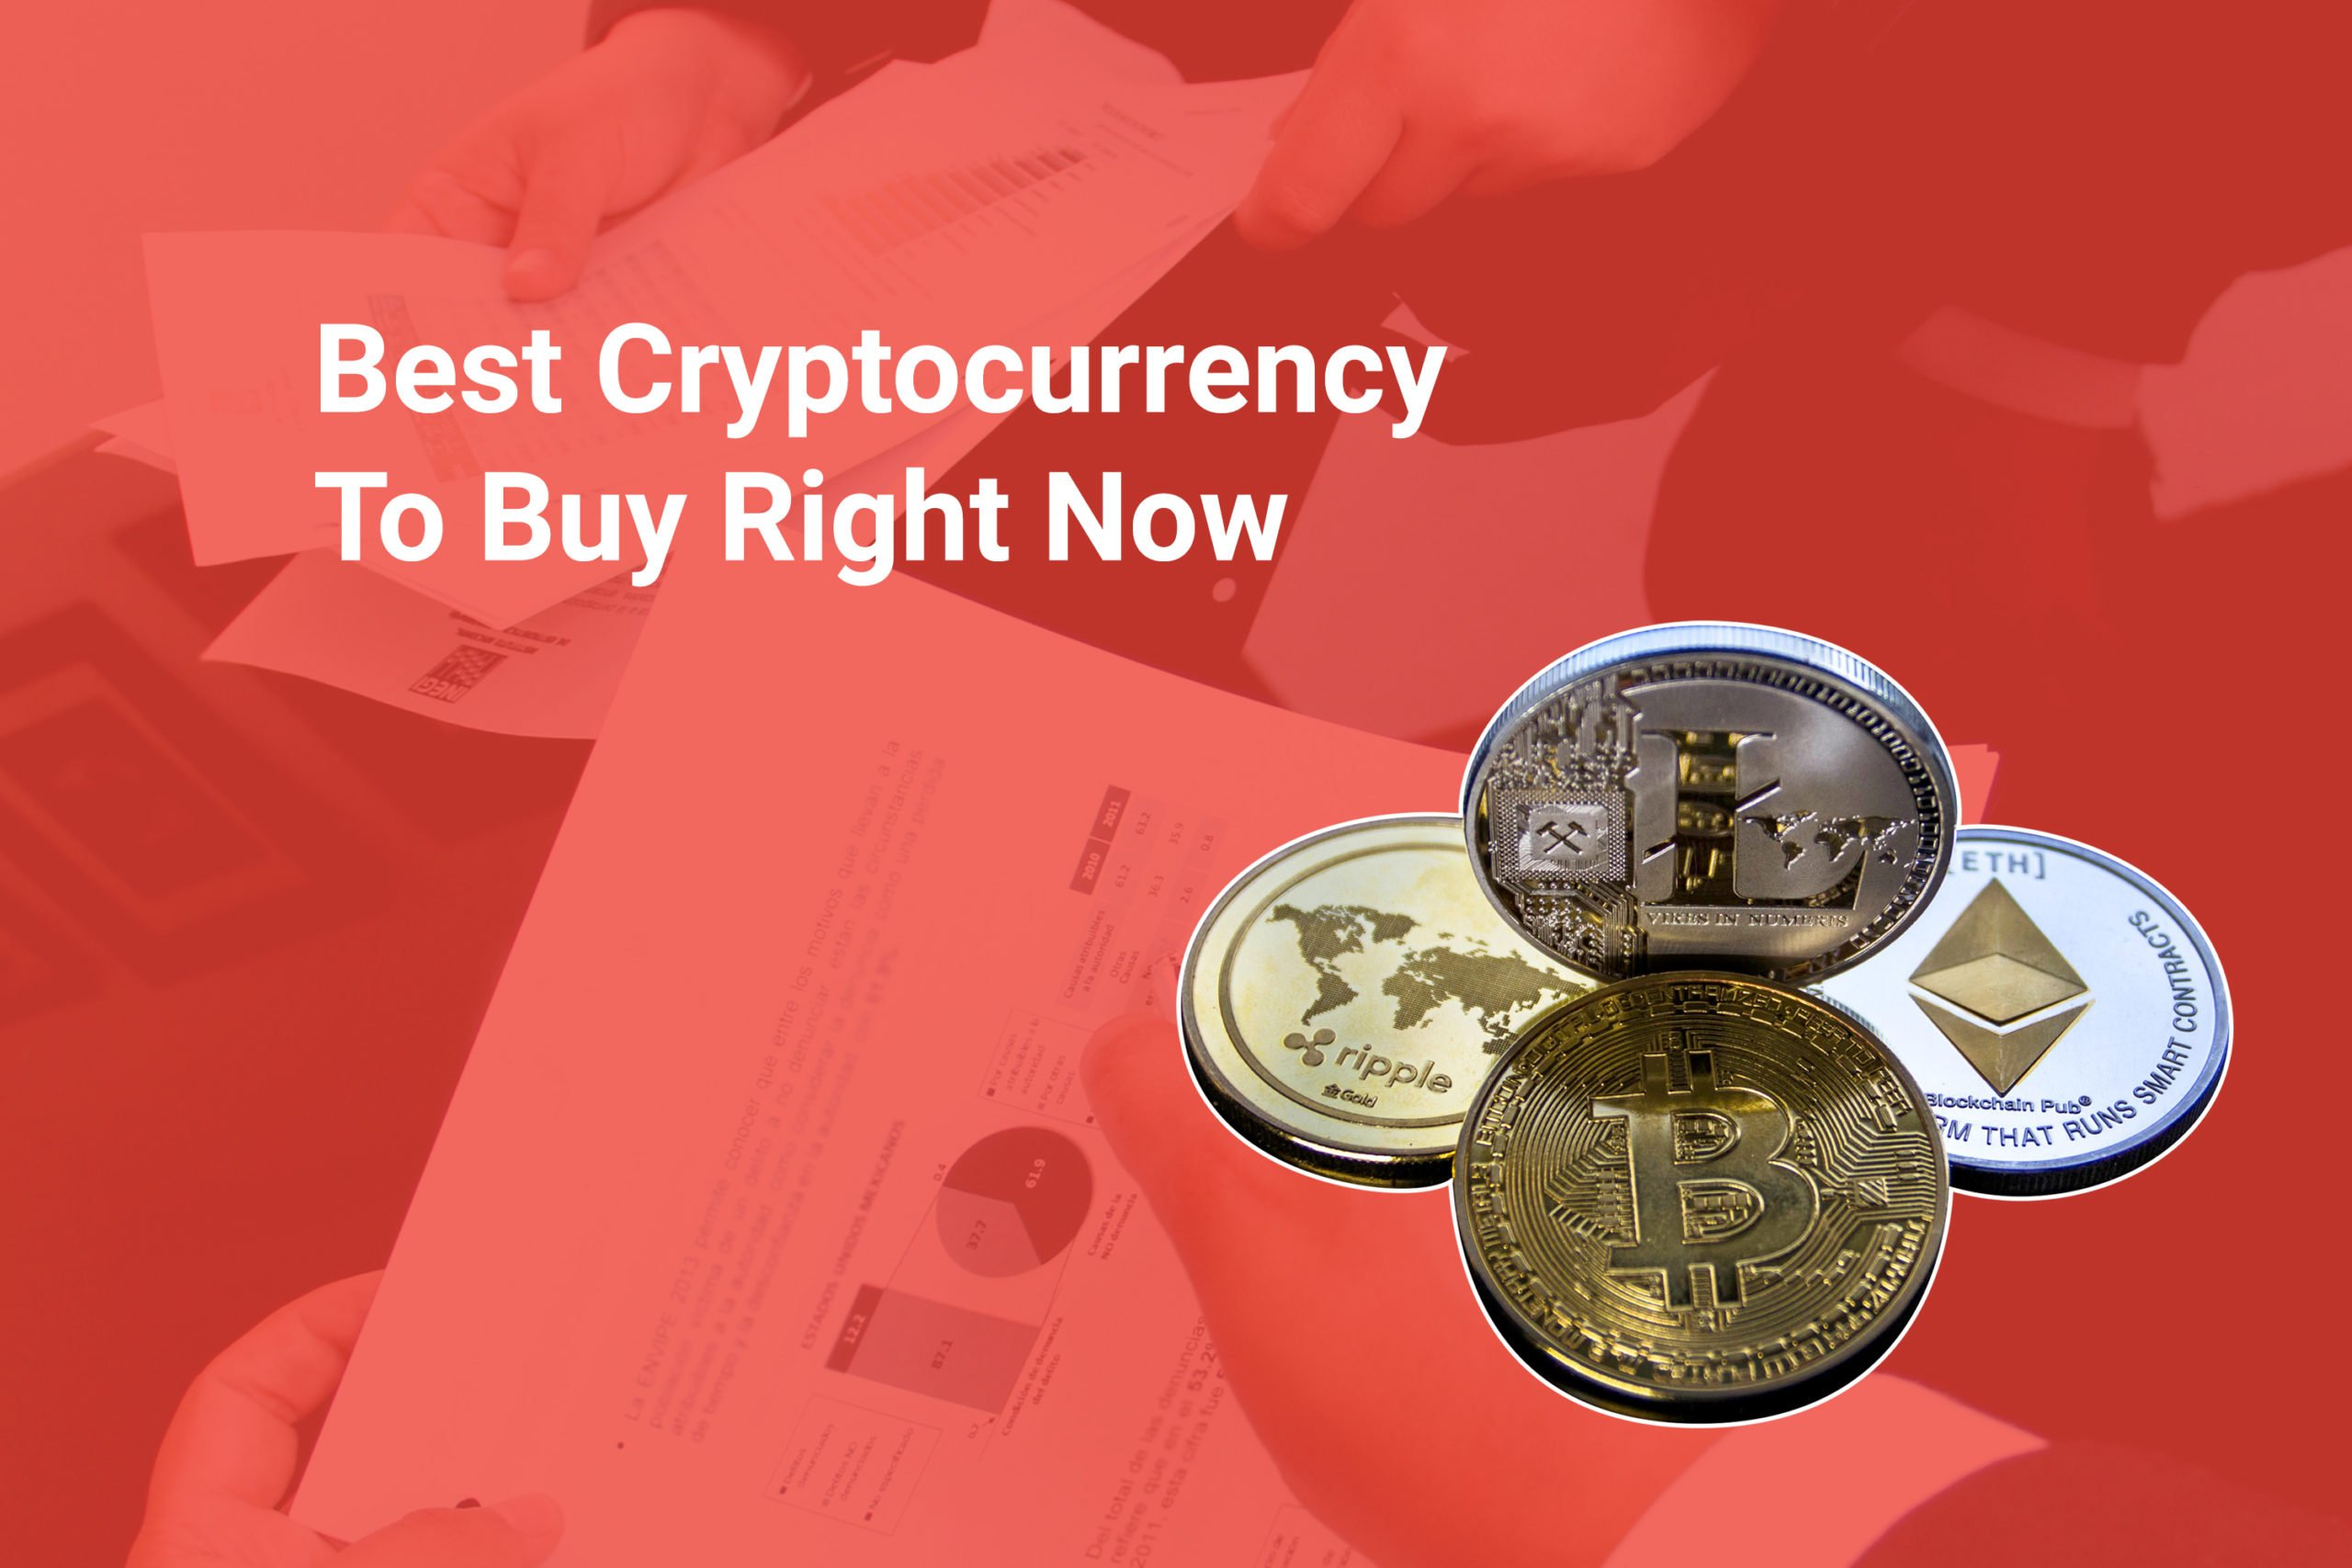 Best Cryptocurrency To Buy Right Now